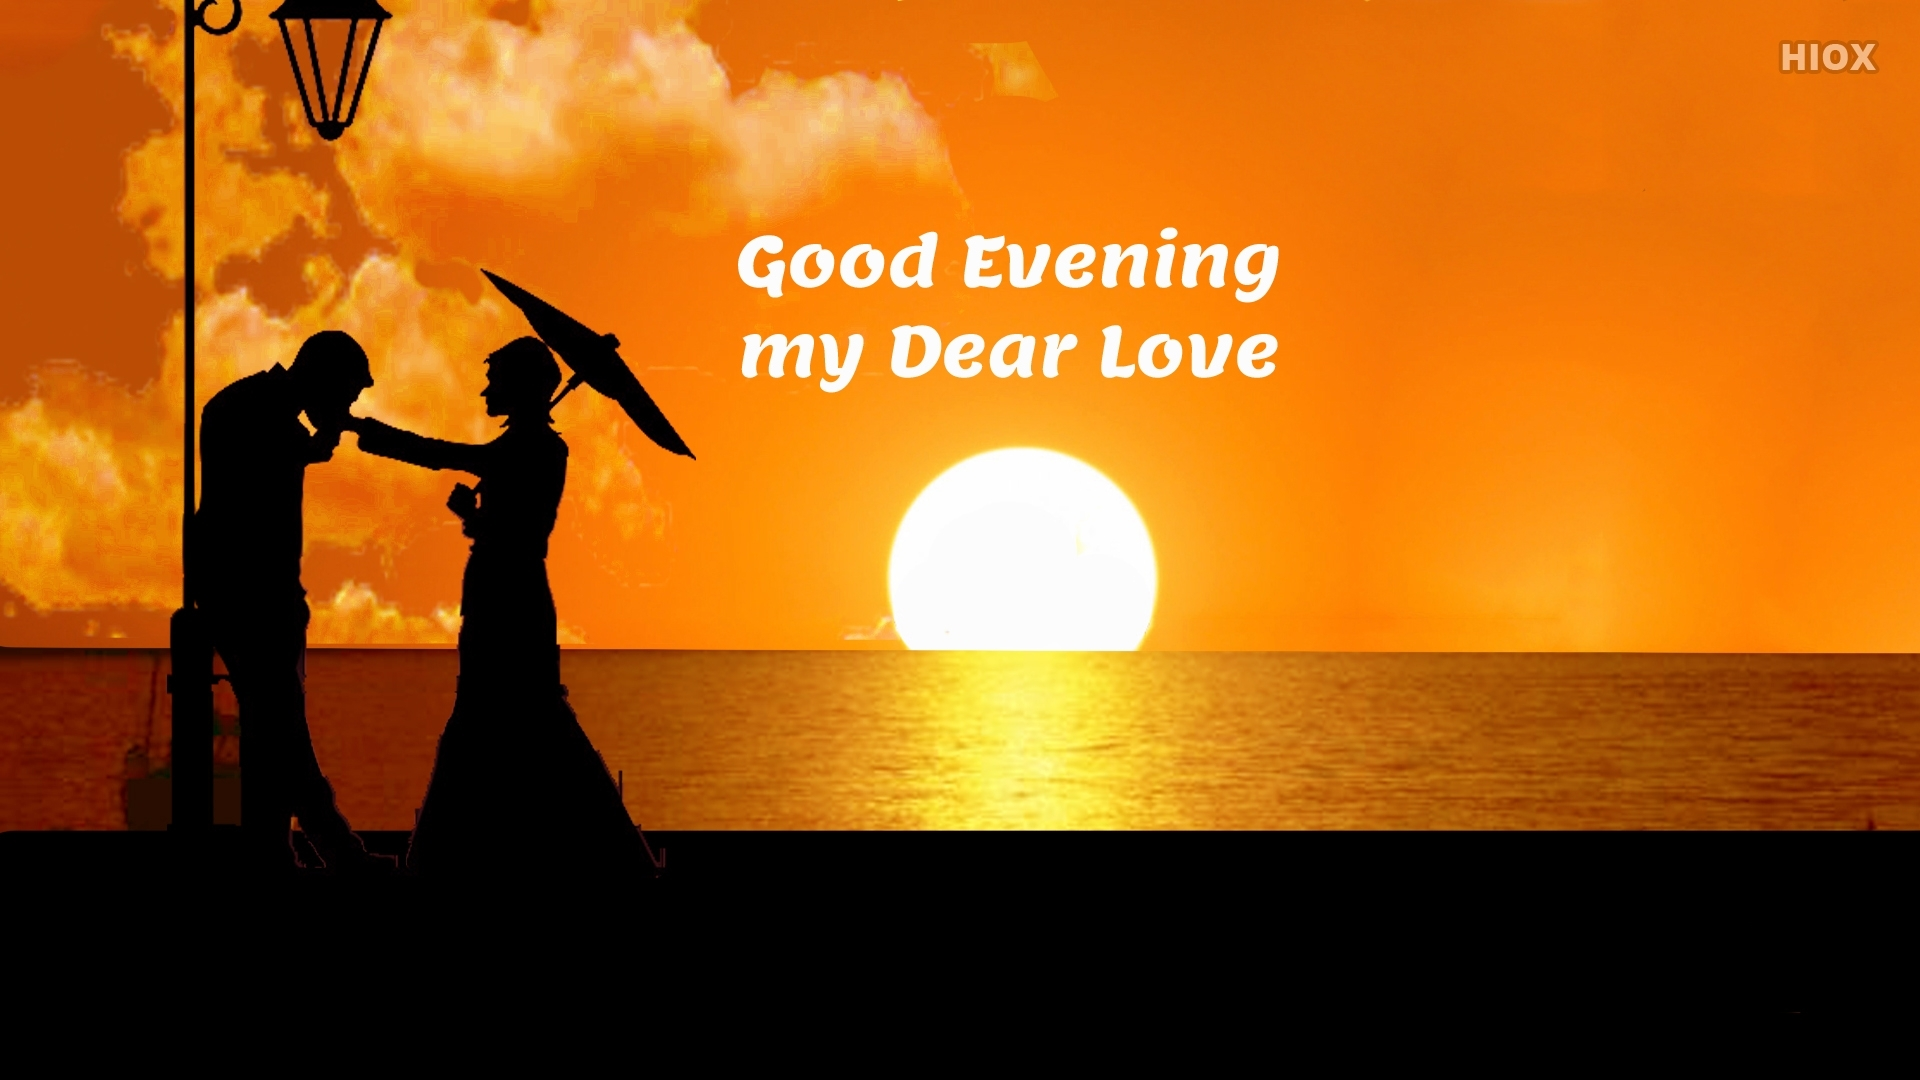 Good Evening Wishes For Love (Good Evening My Dear Love)